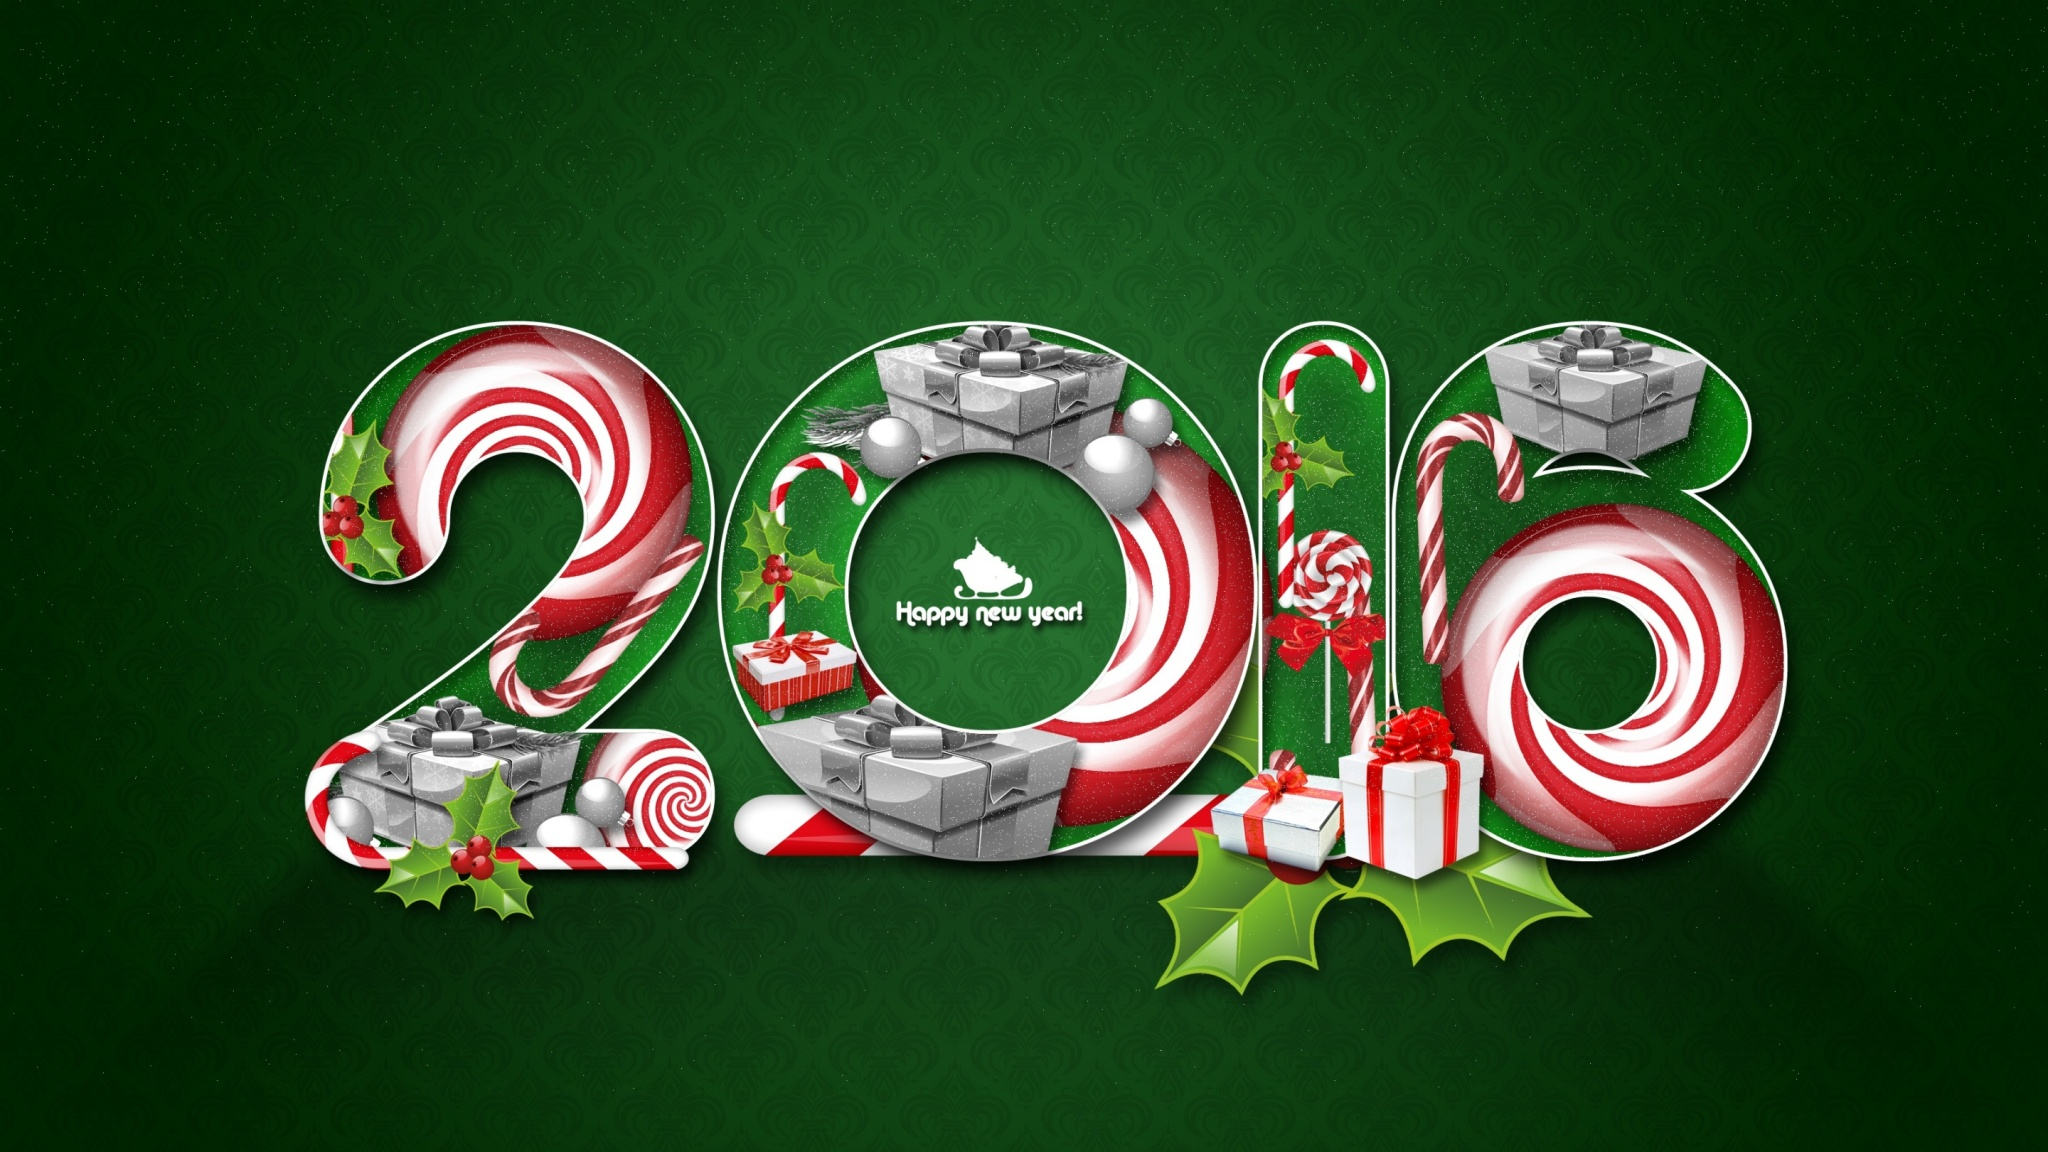 2016 New Year Green Background